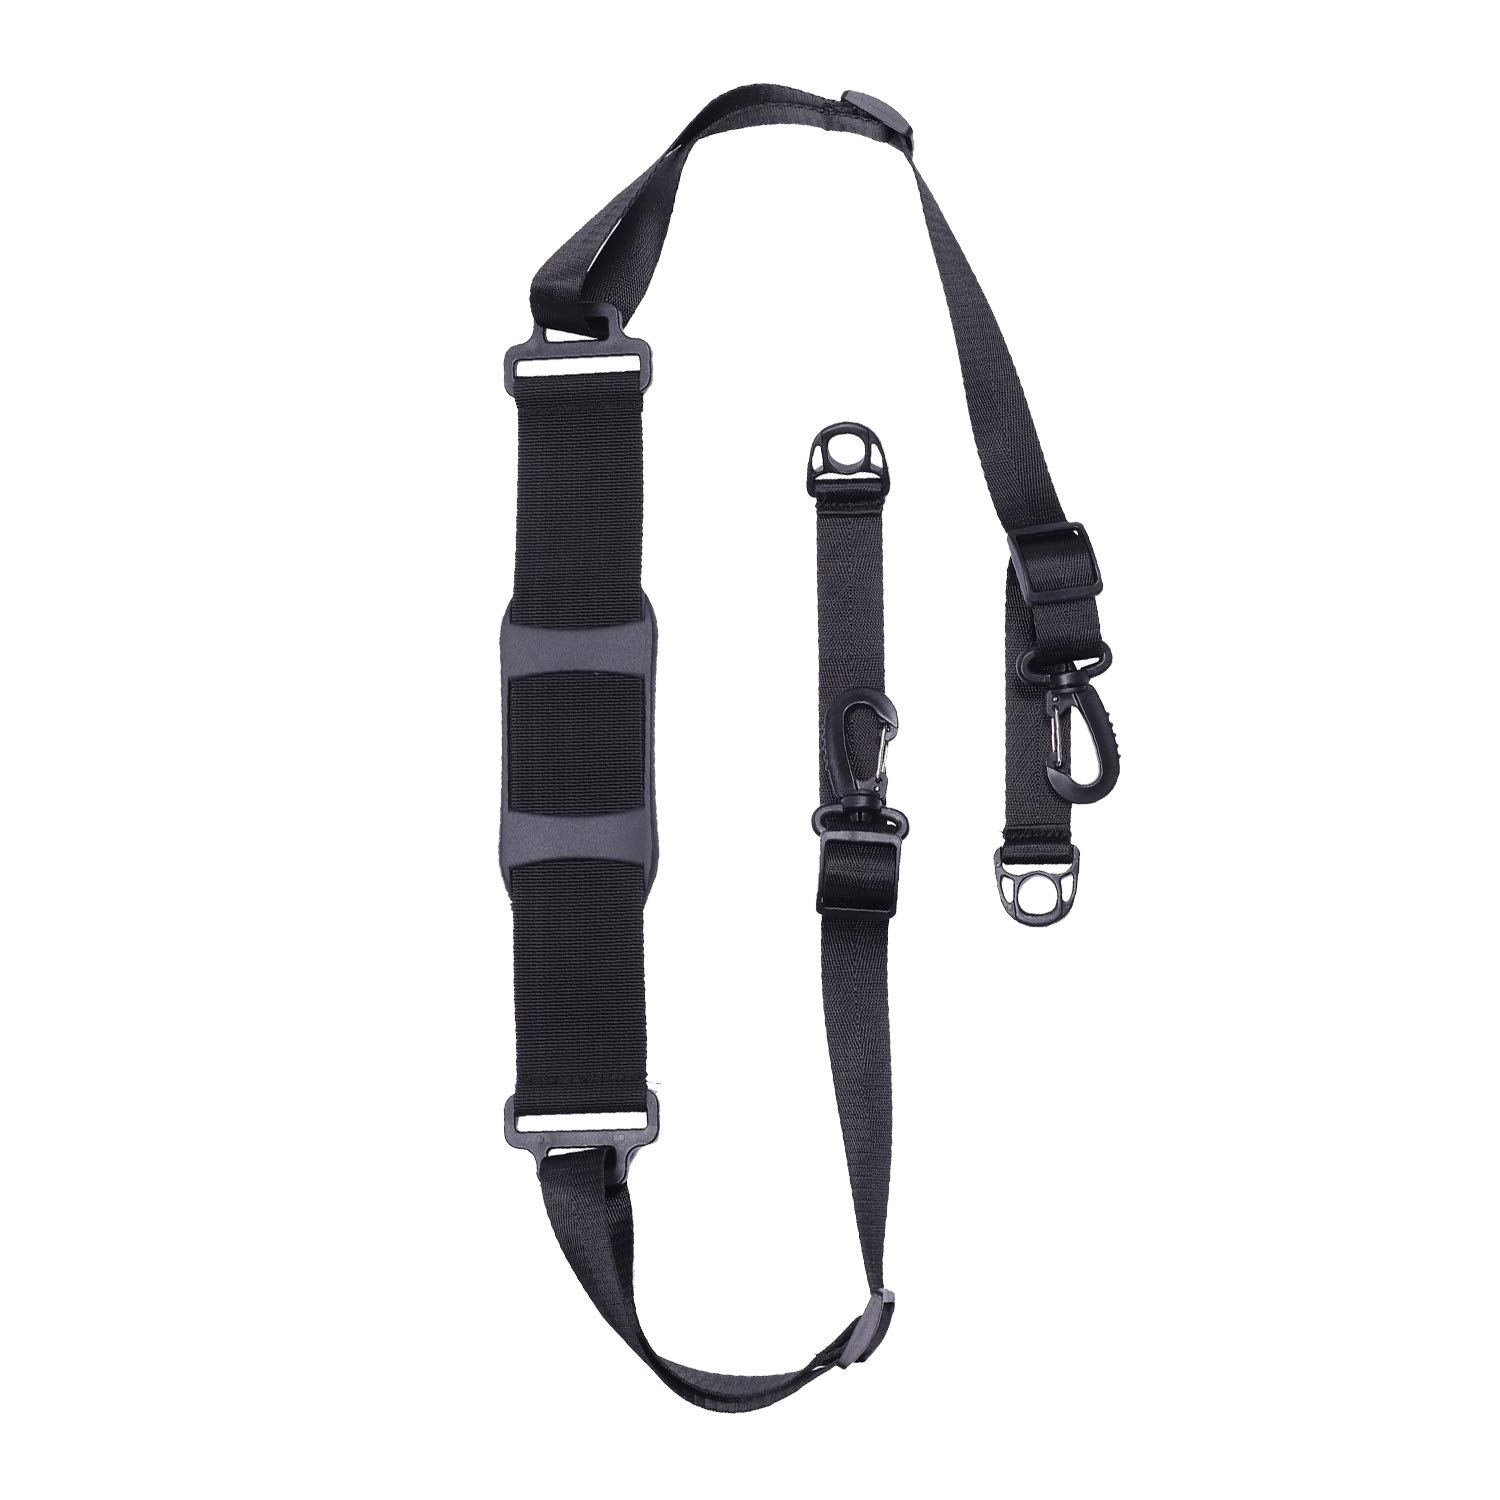 Epessa Kick Scooter Shoulder Strap Compatible for Carrying Beach Chair, Electric Scooter,Kids Bike,Foldable Bikes, Balance Bikes, Yoga Mat with Non-Slip Shoulder Pad,Adjustable by Epessa